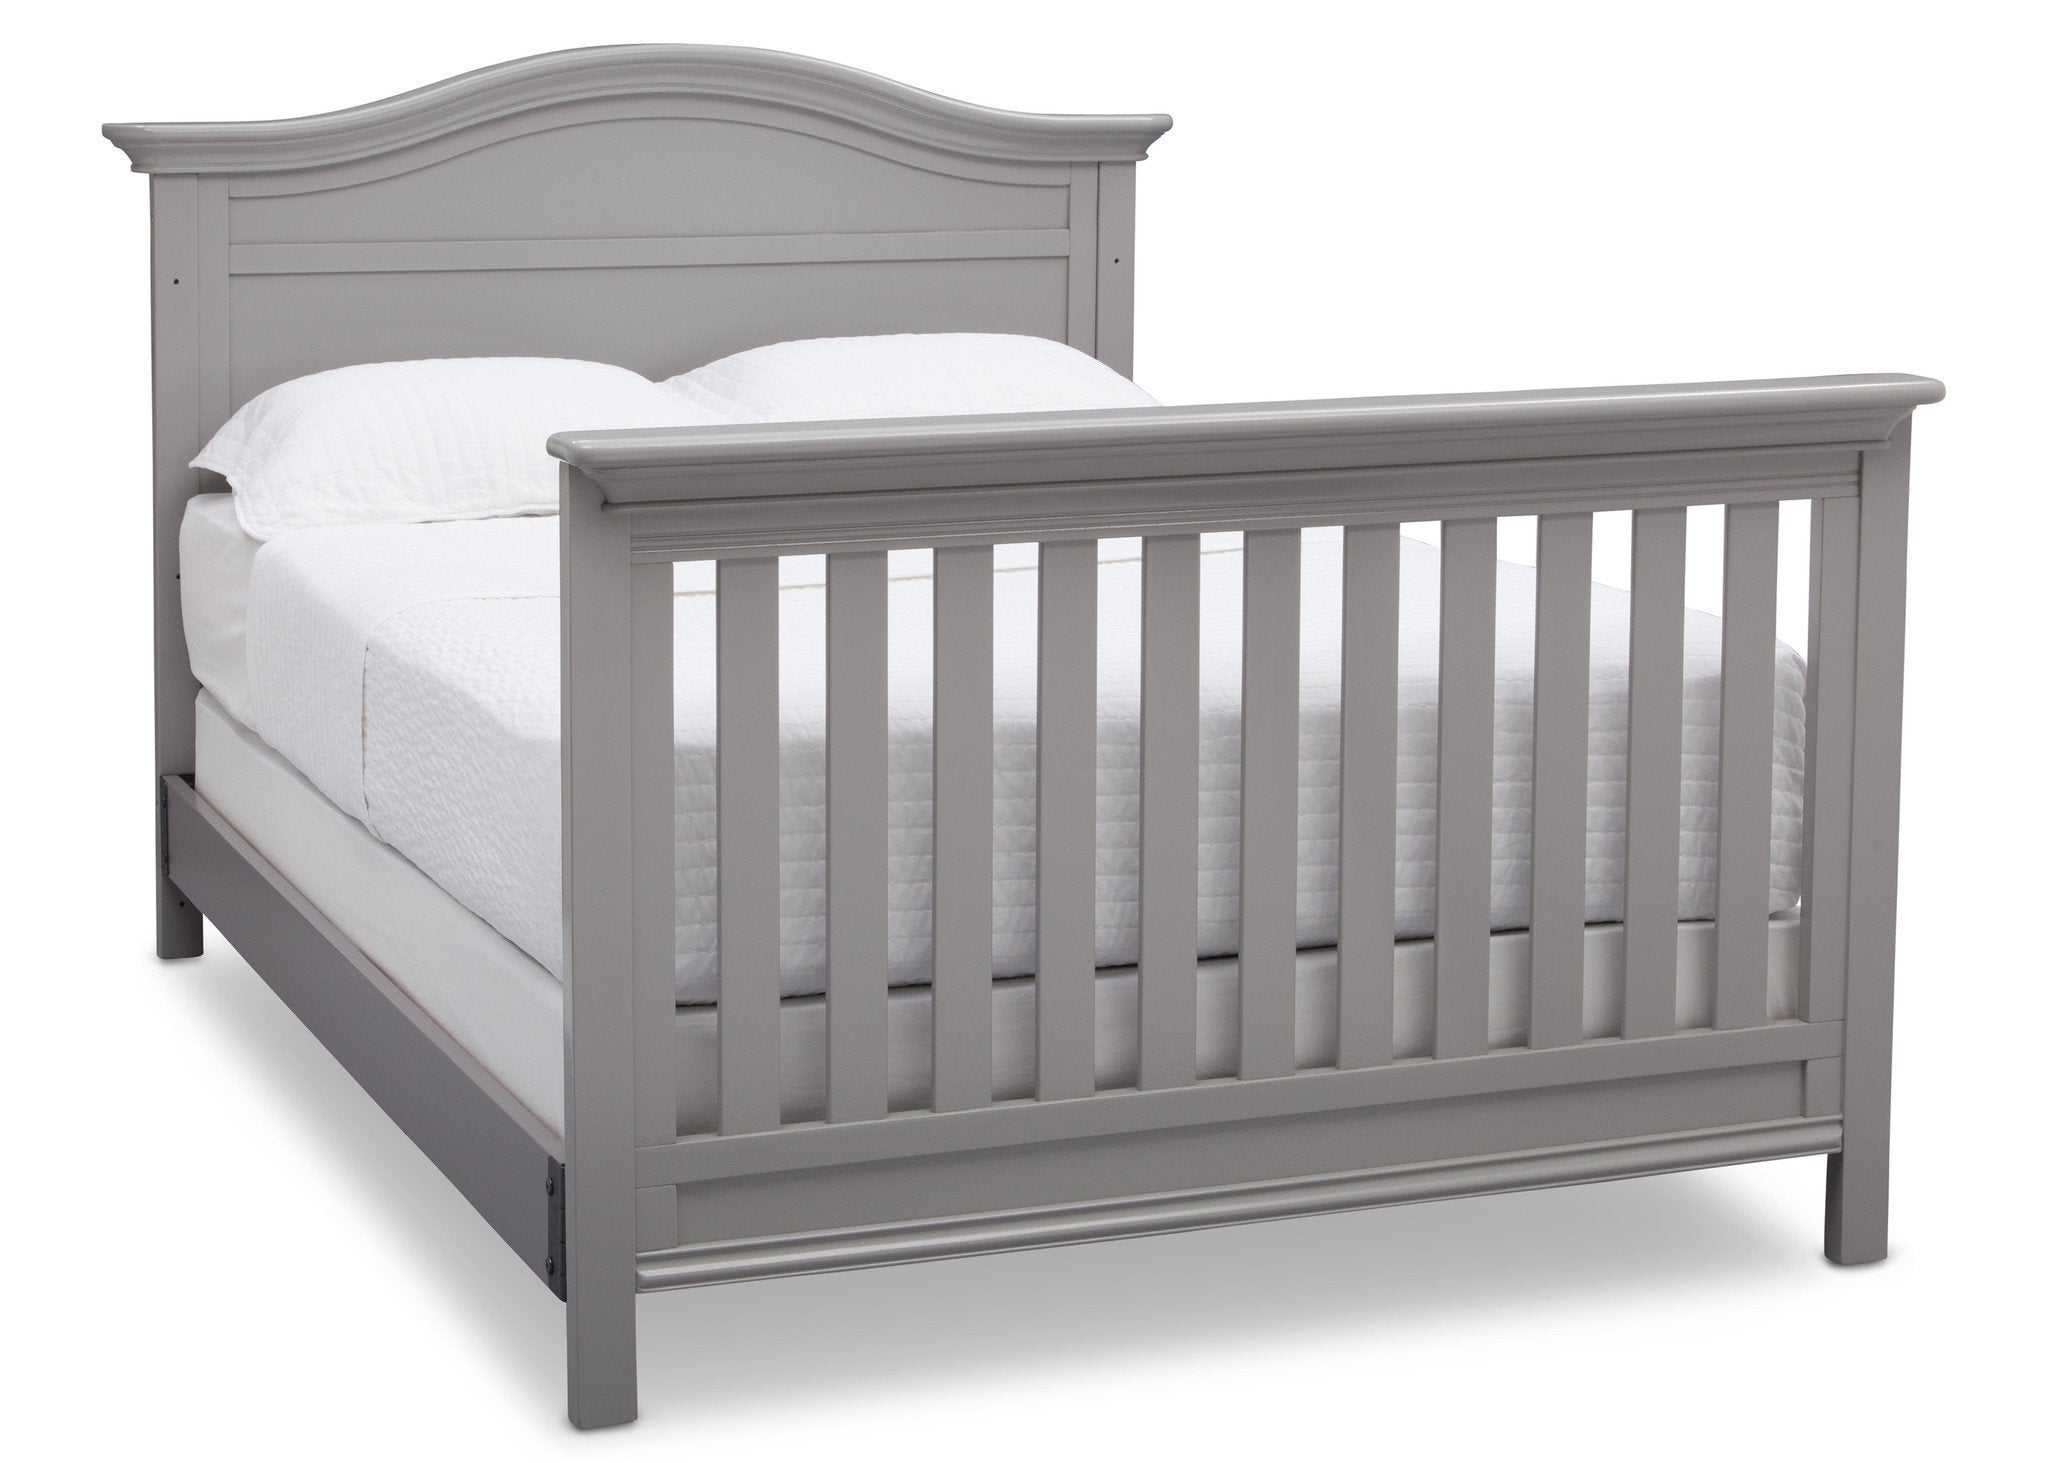 Serta Grey (026) Bethpage 4-in-1 Crib, Side View with Full Size Bed a7a